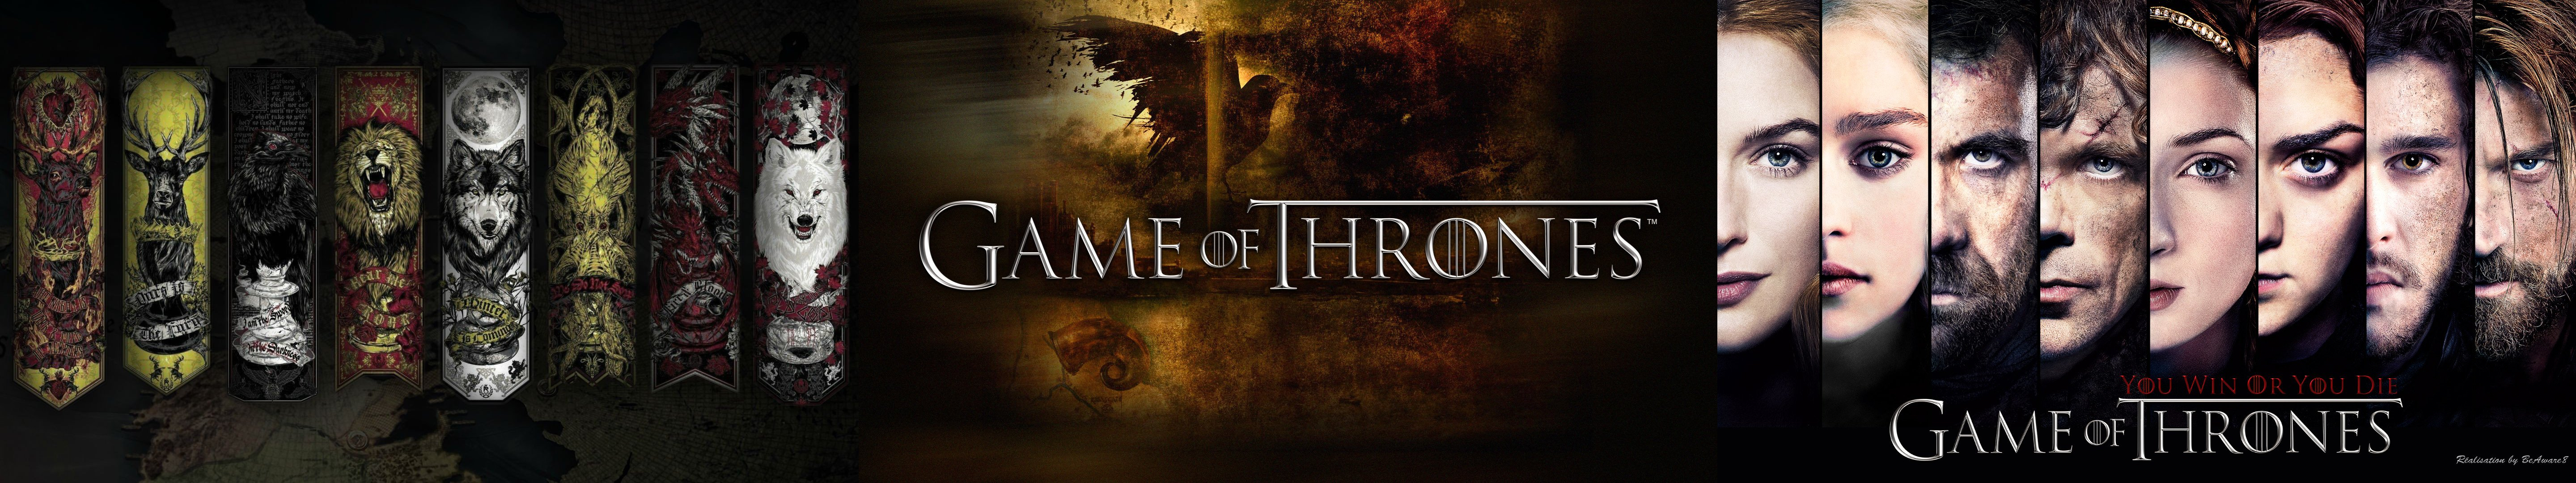 Triple Monitor Multiple Screen Multi Game Of Thrones Wallpaper